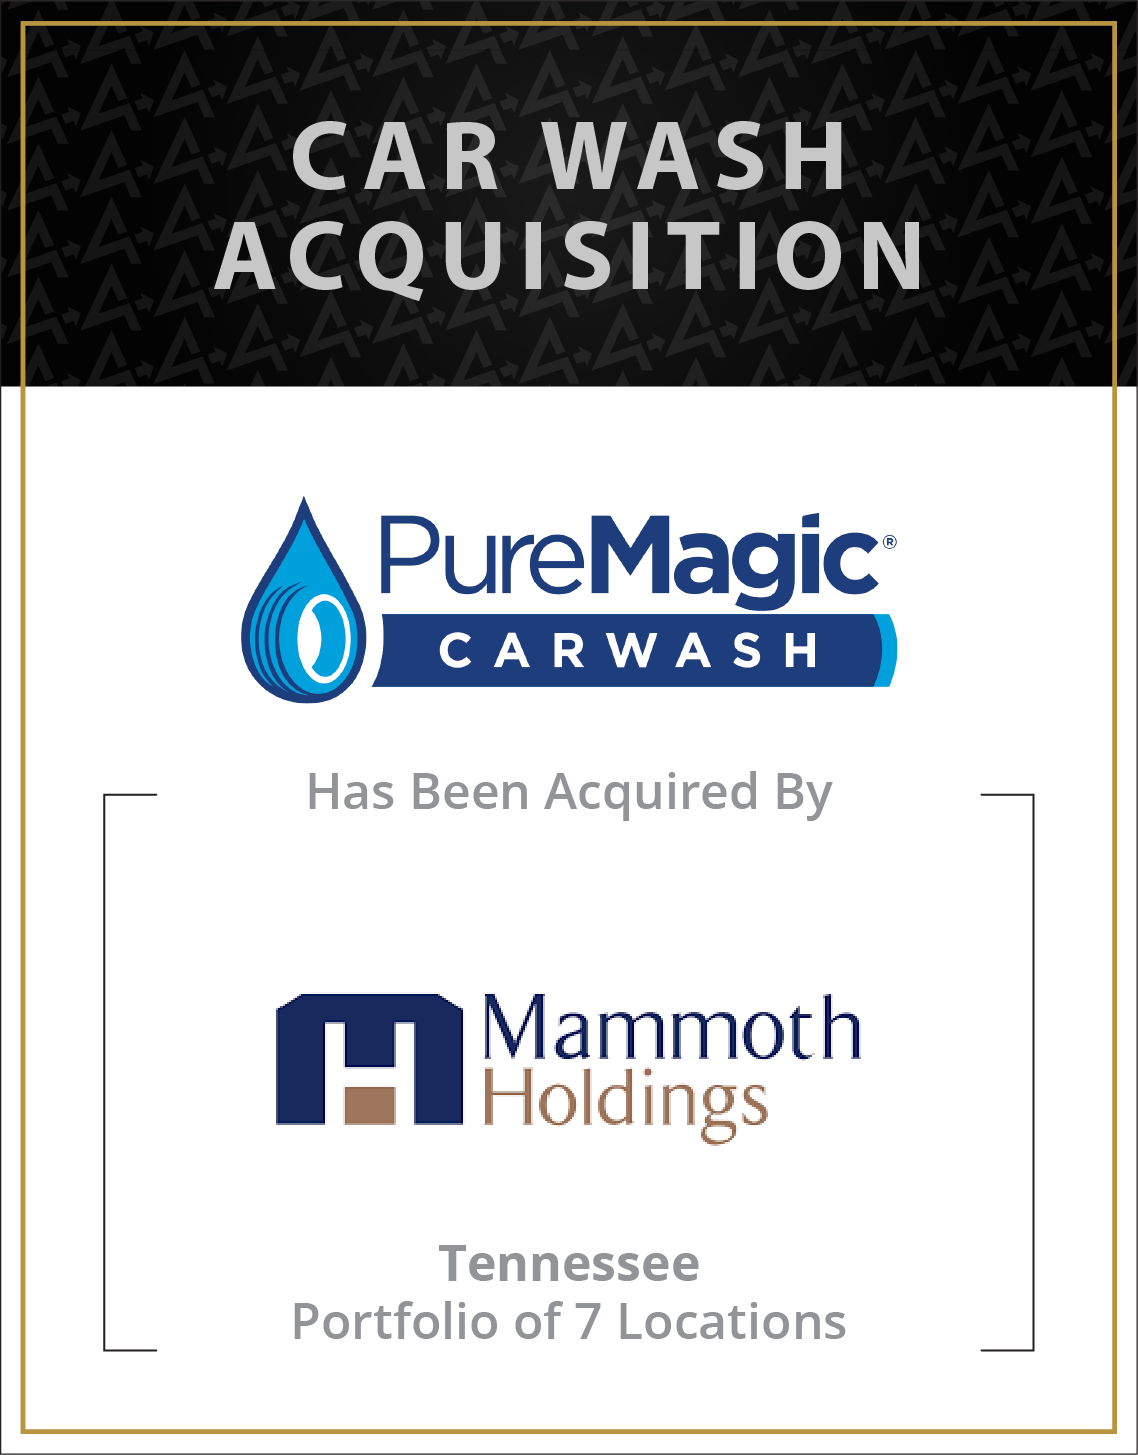 Pure Magic Carwash has been acquired by Mammoth Holdings